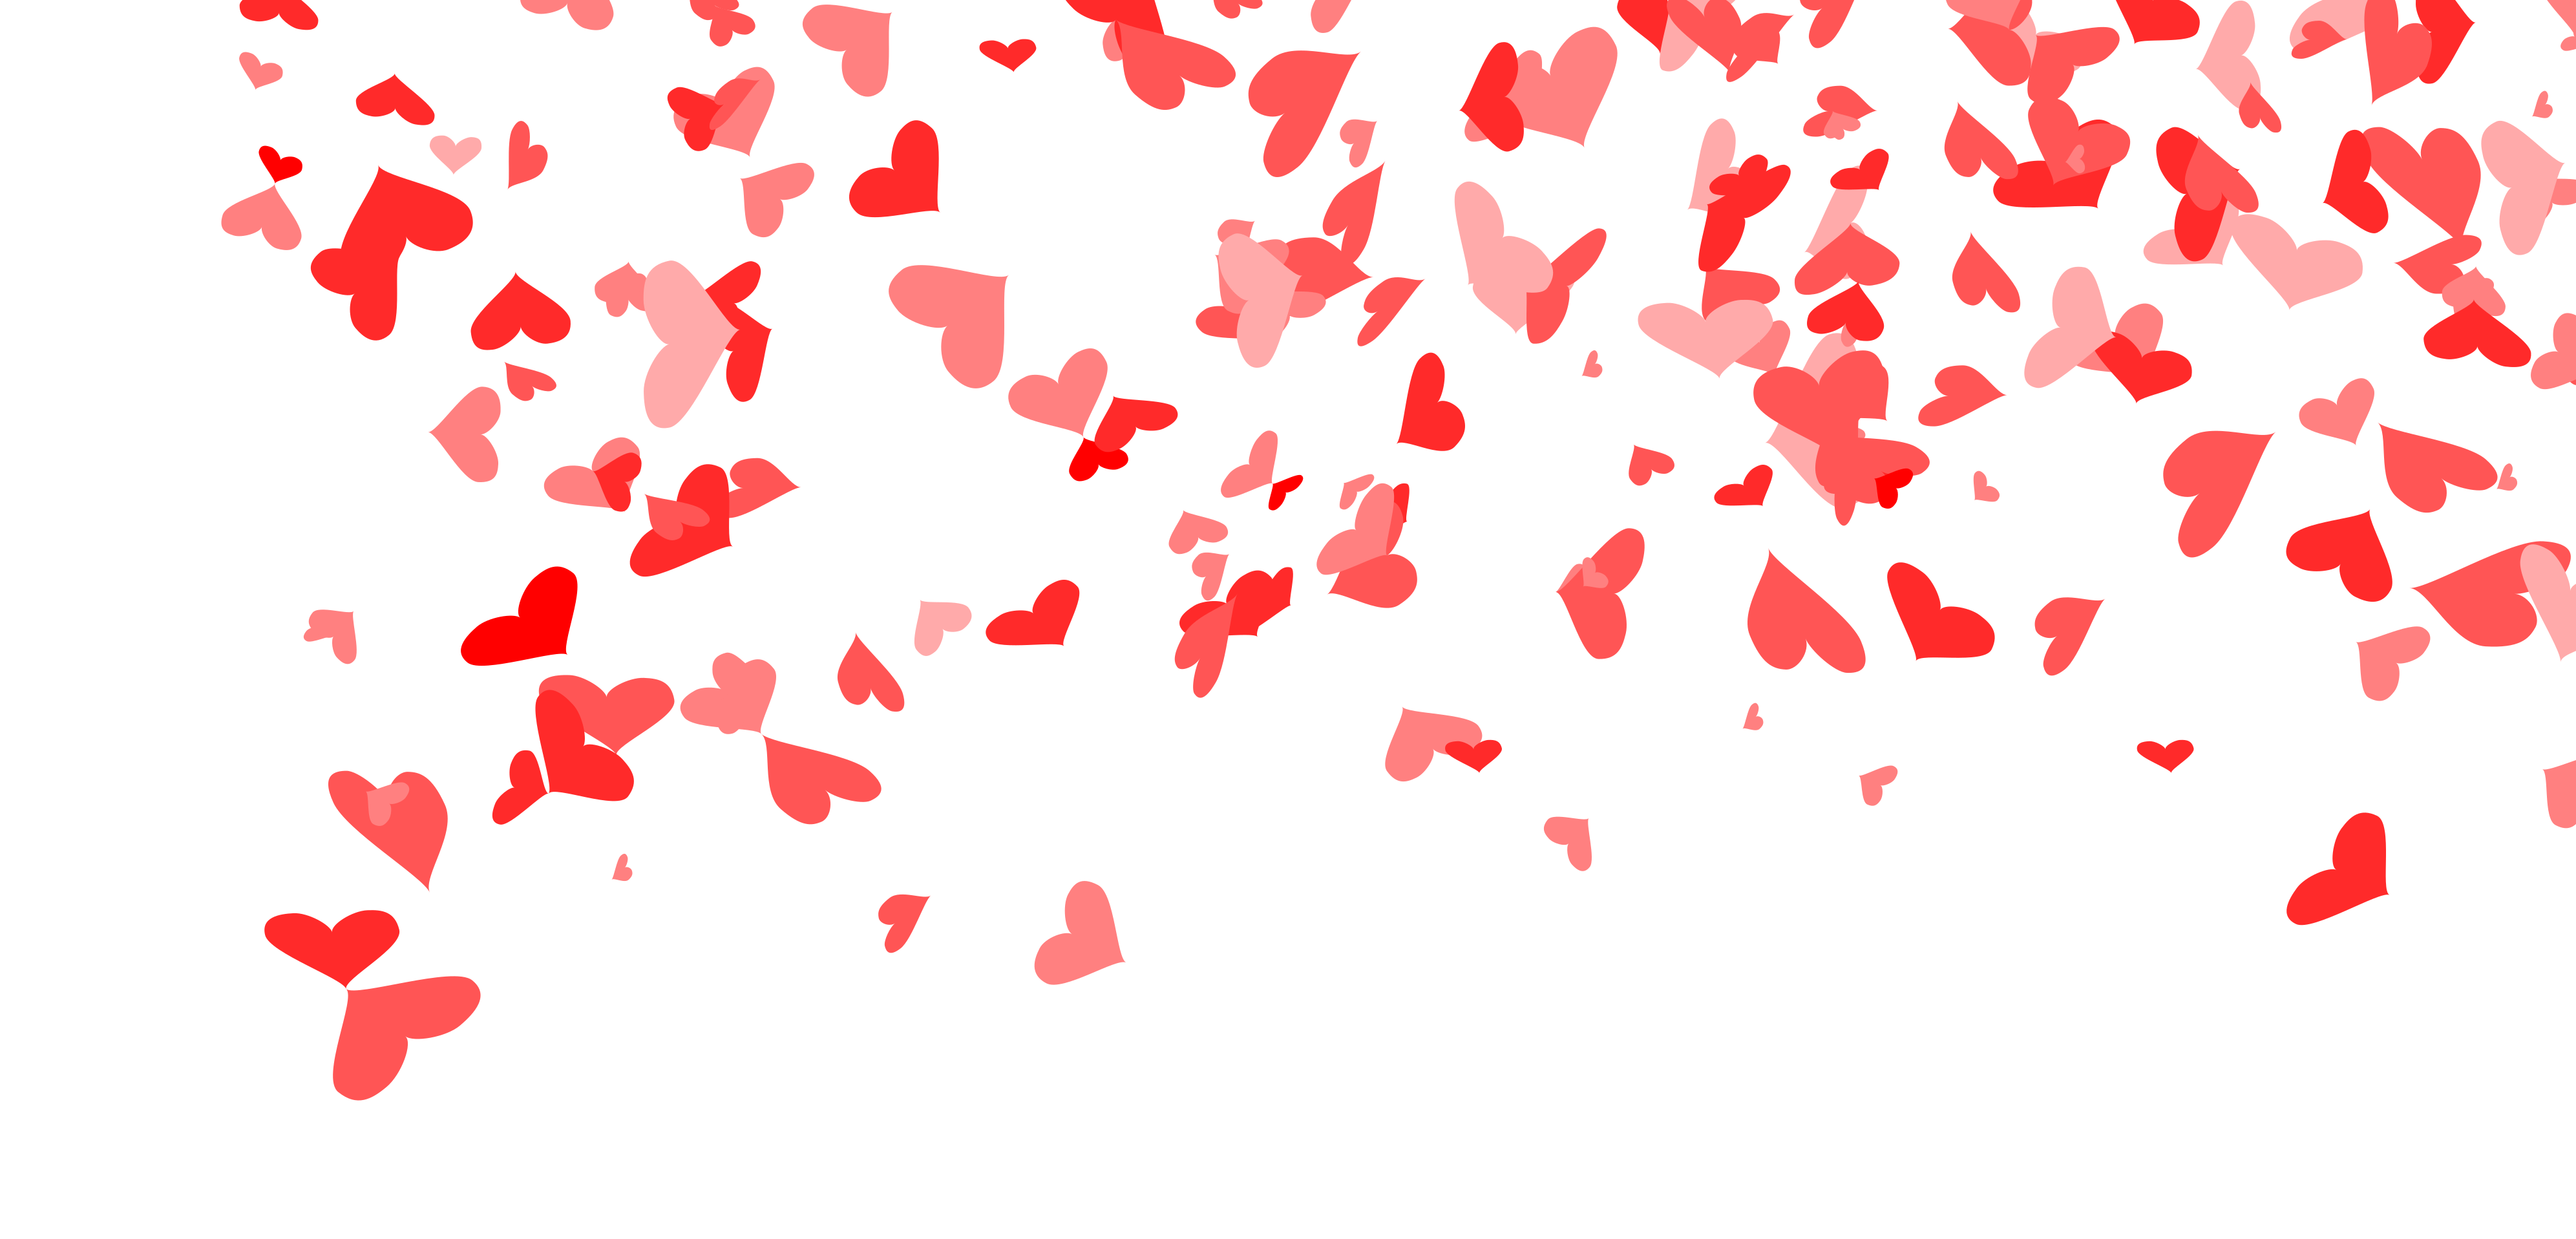 4 Heart Confetti Background Png Transparent Onlygfx Com